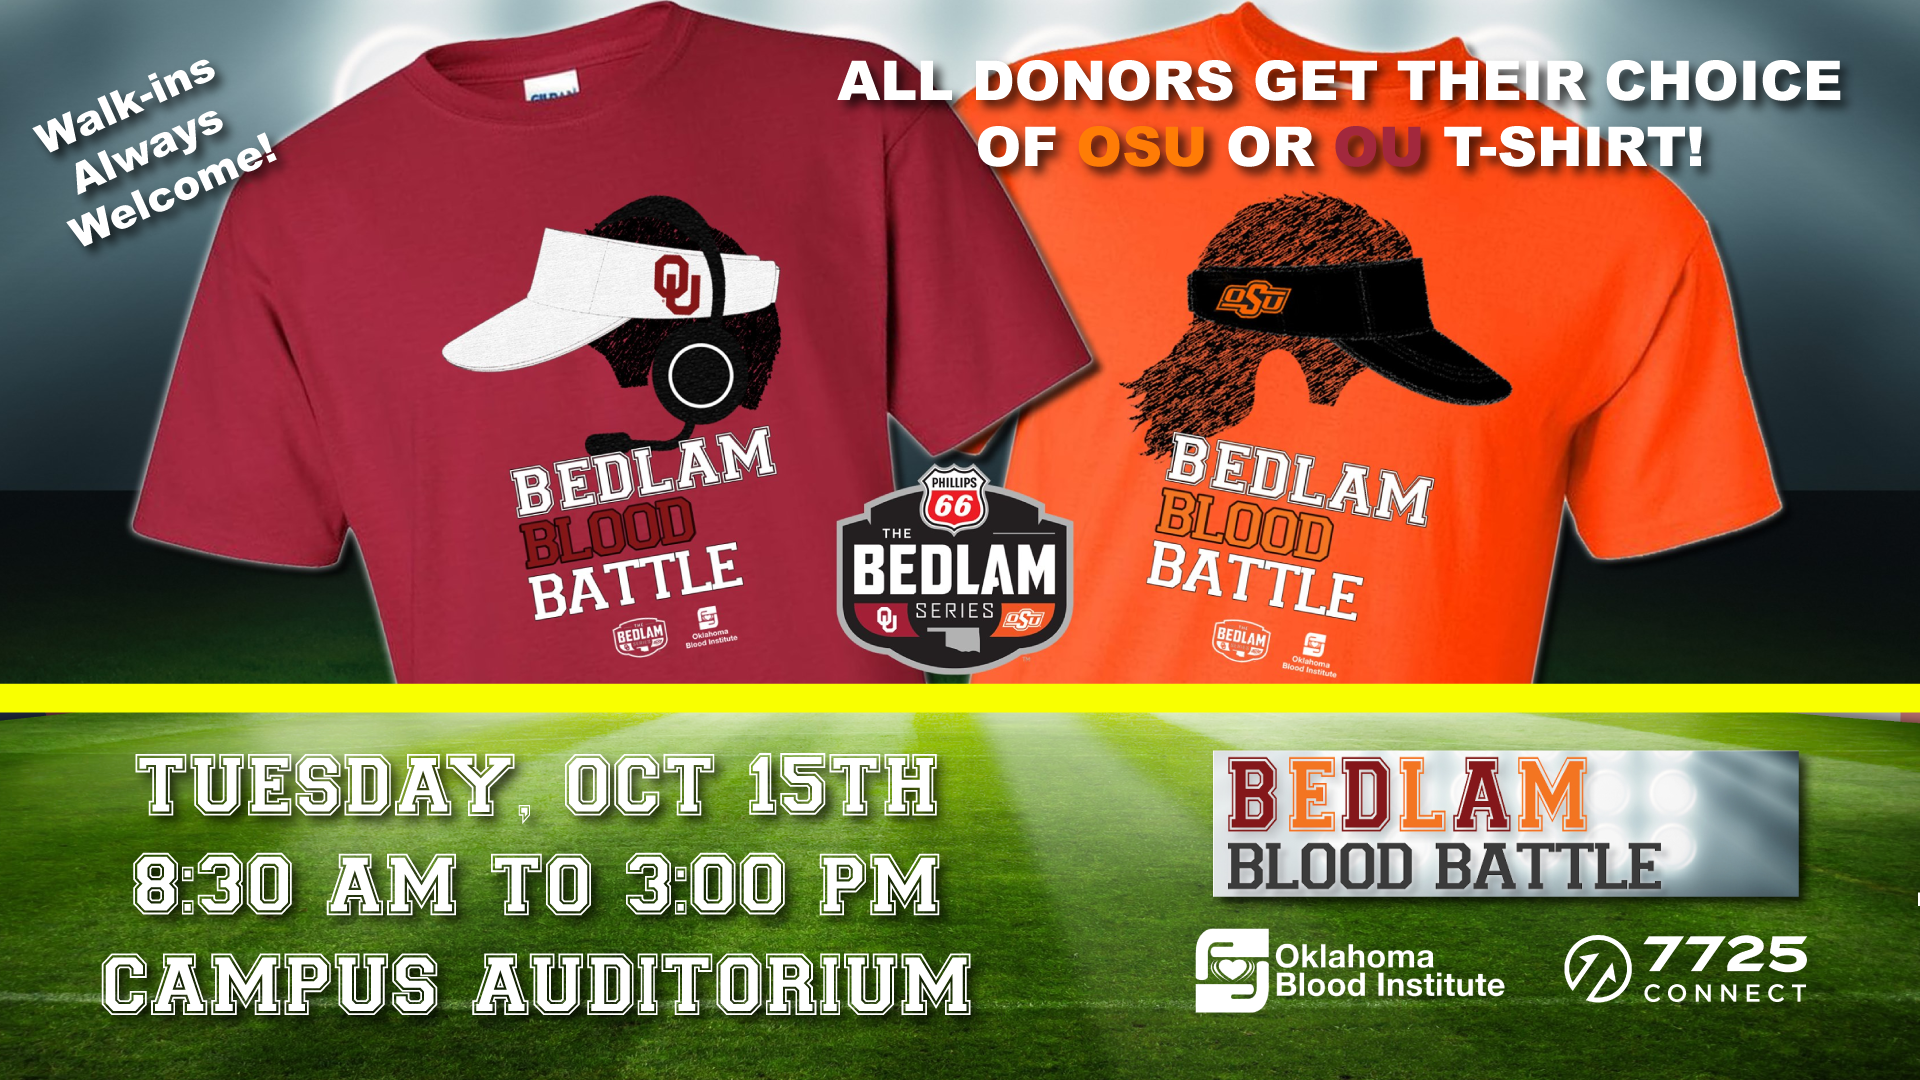 7725 CONNECT Bedlam Blood Drive